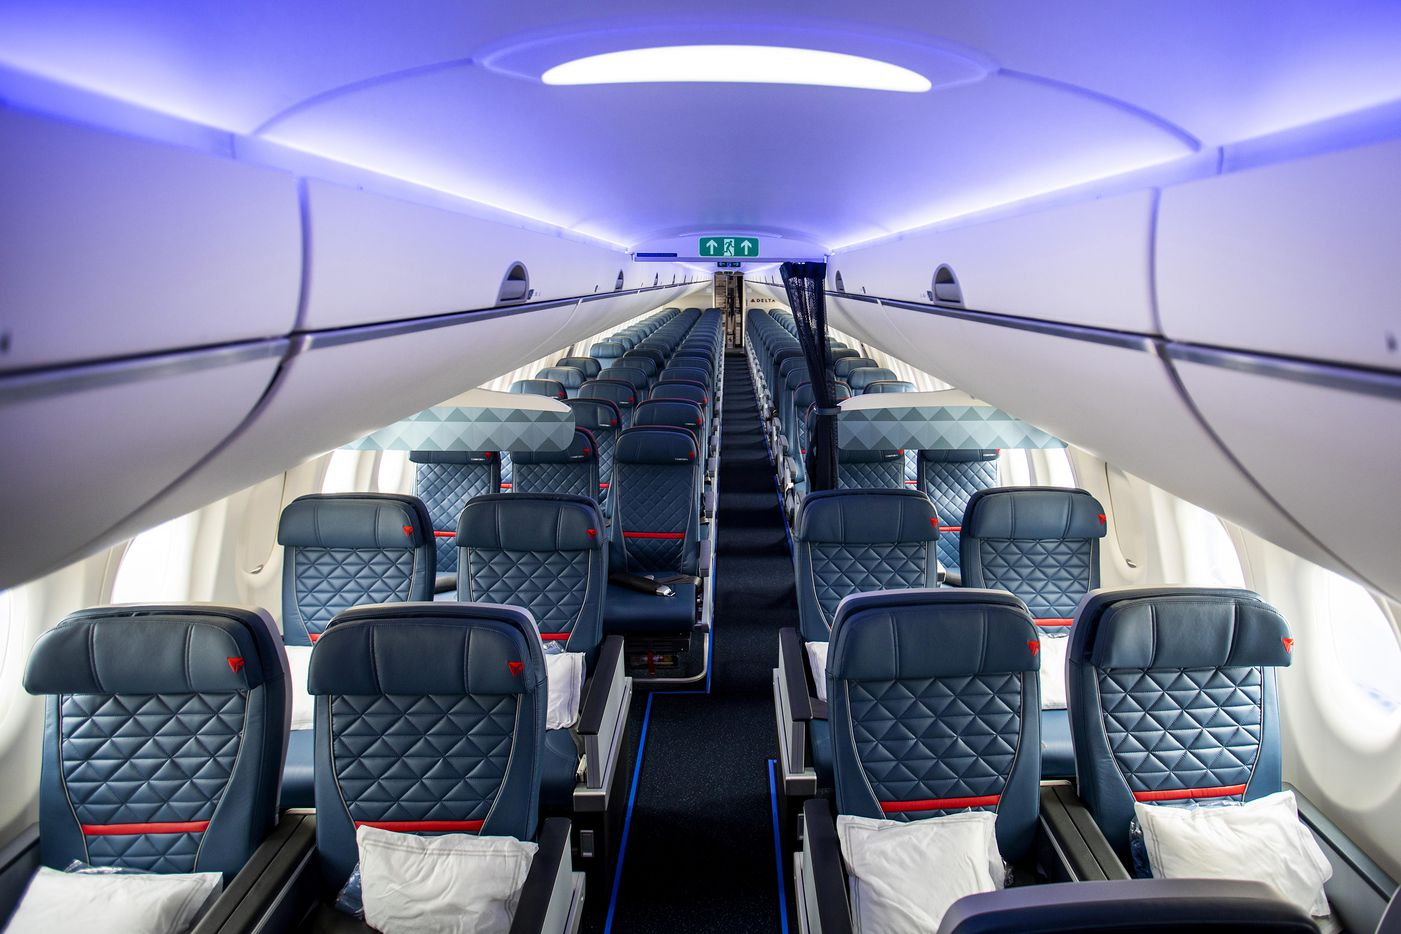 The view from the front of Delta's new Airbus A220-100 airplane.